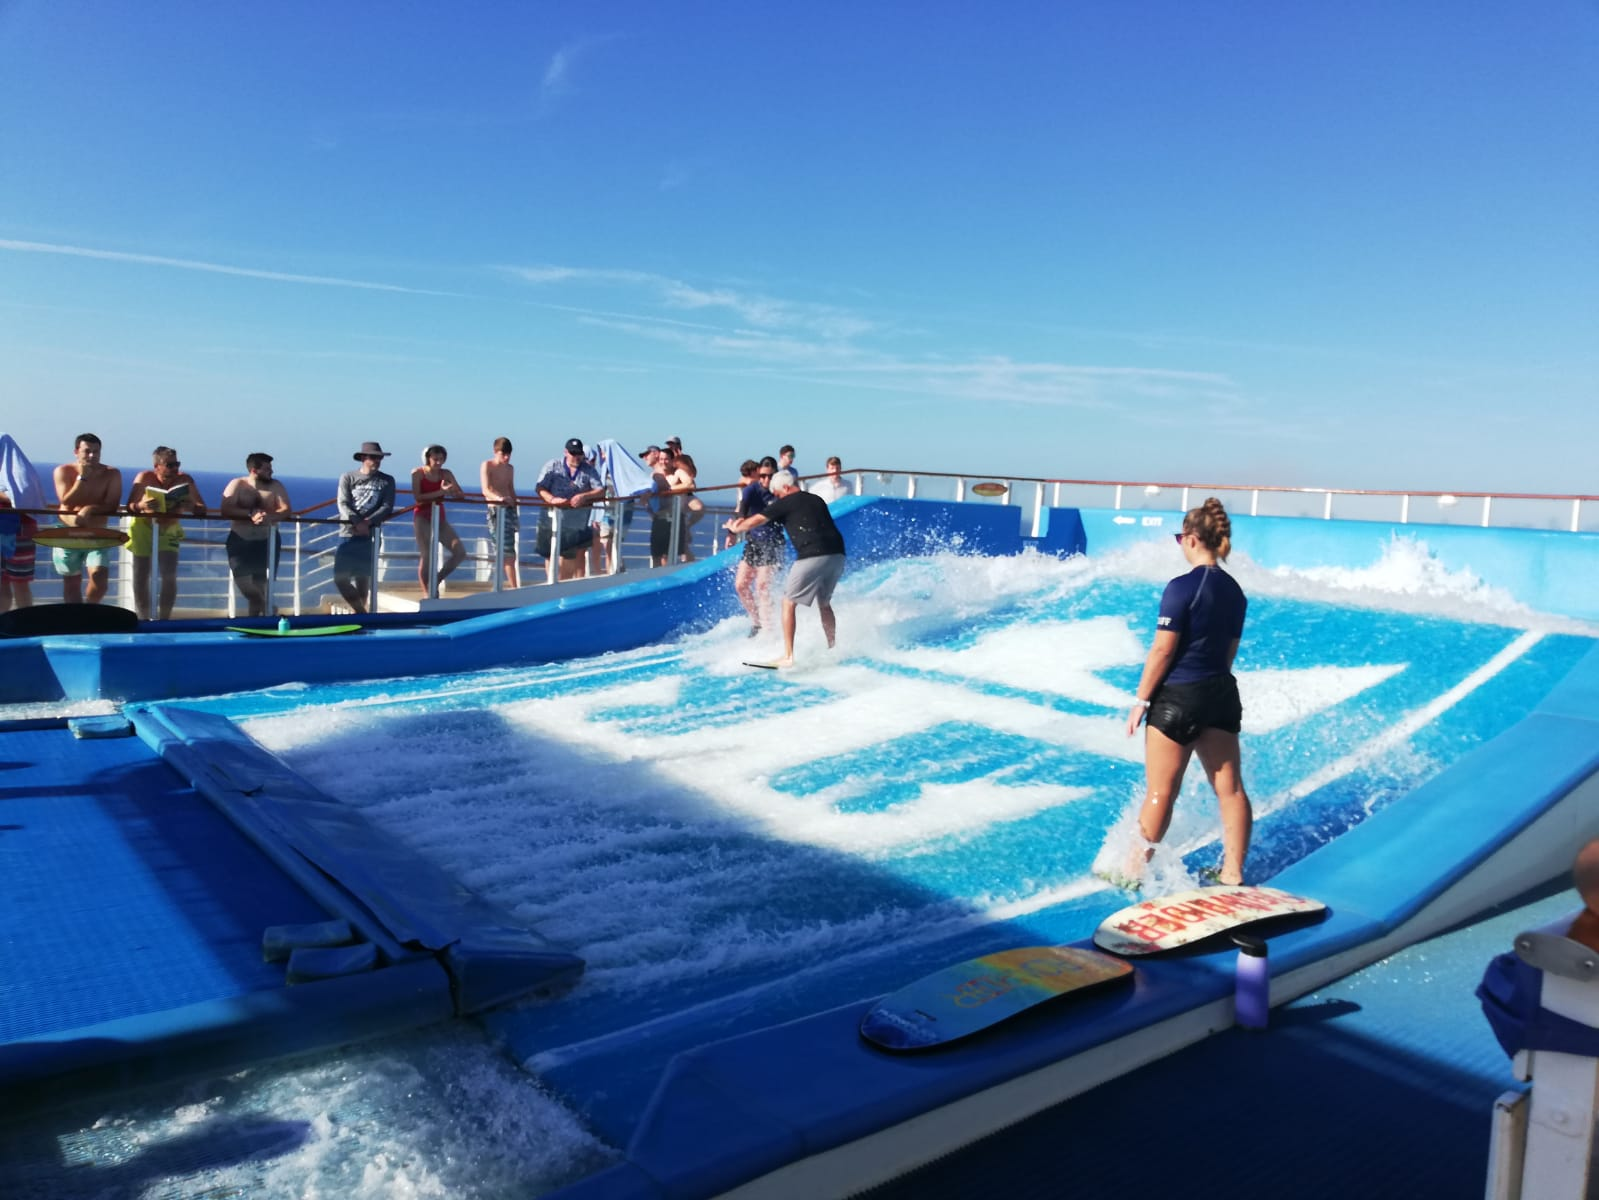 ALLURE OF THE SEAS CENTRAL PARK ROYAL CARIBBEAN, FLOW RIDE